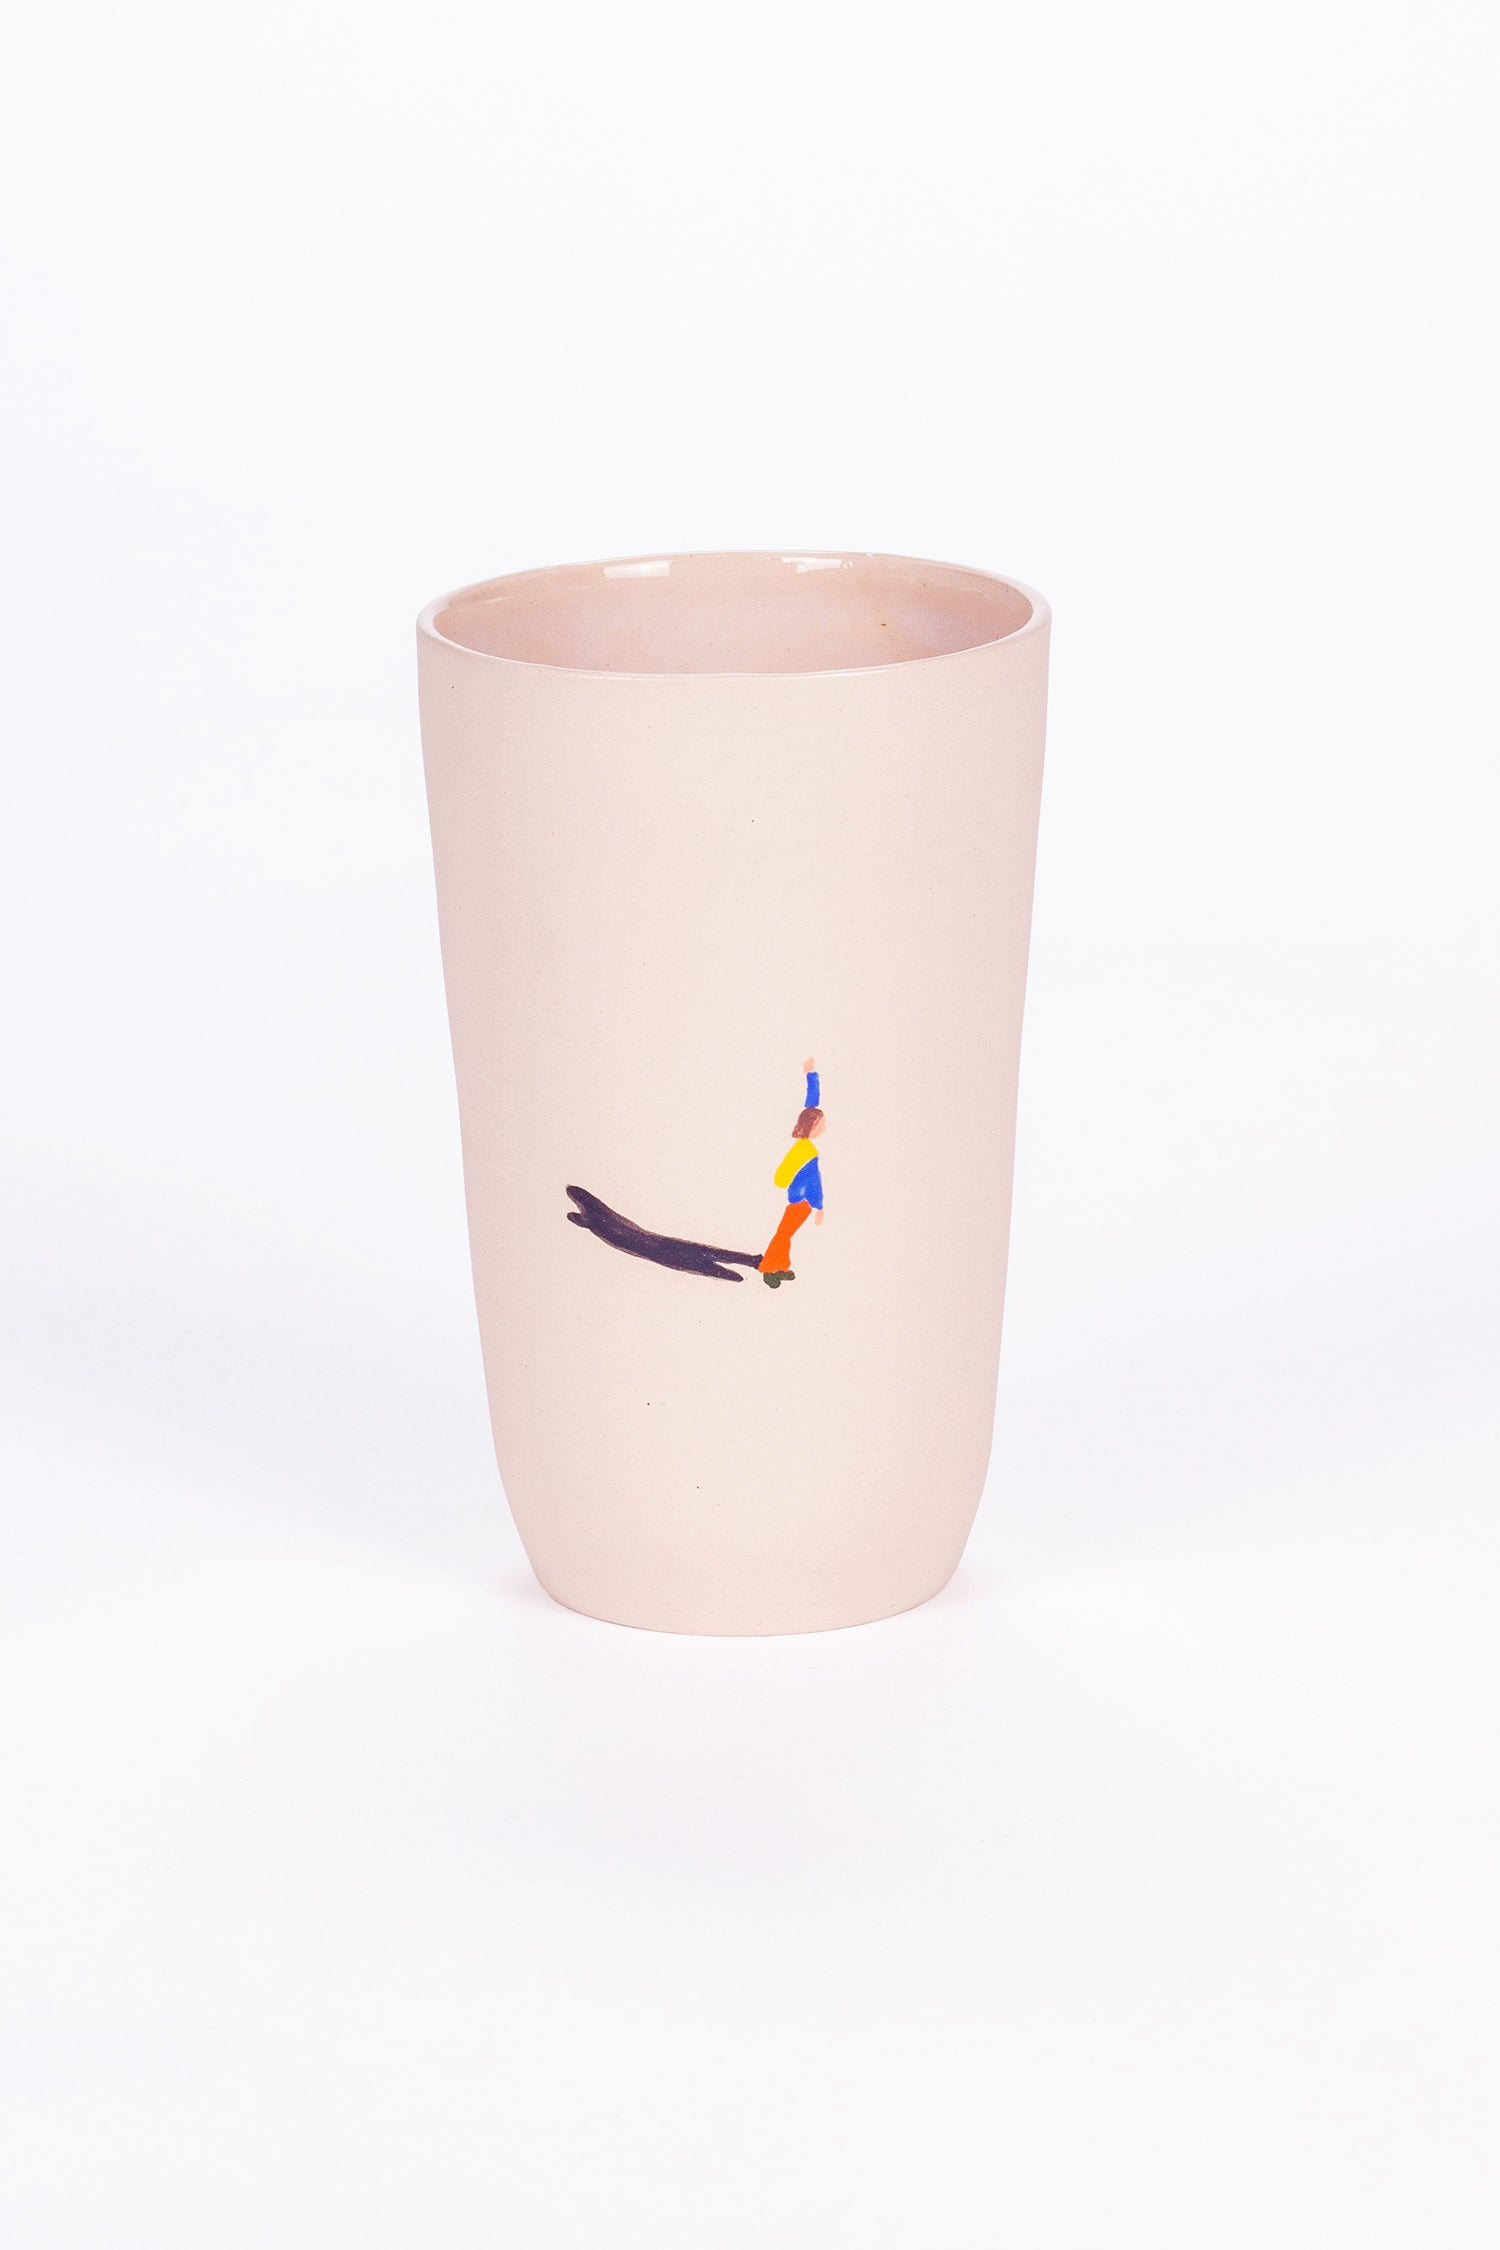 HIGH CUP - PINK - WAVE